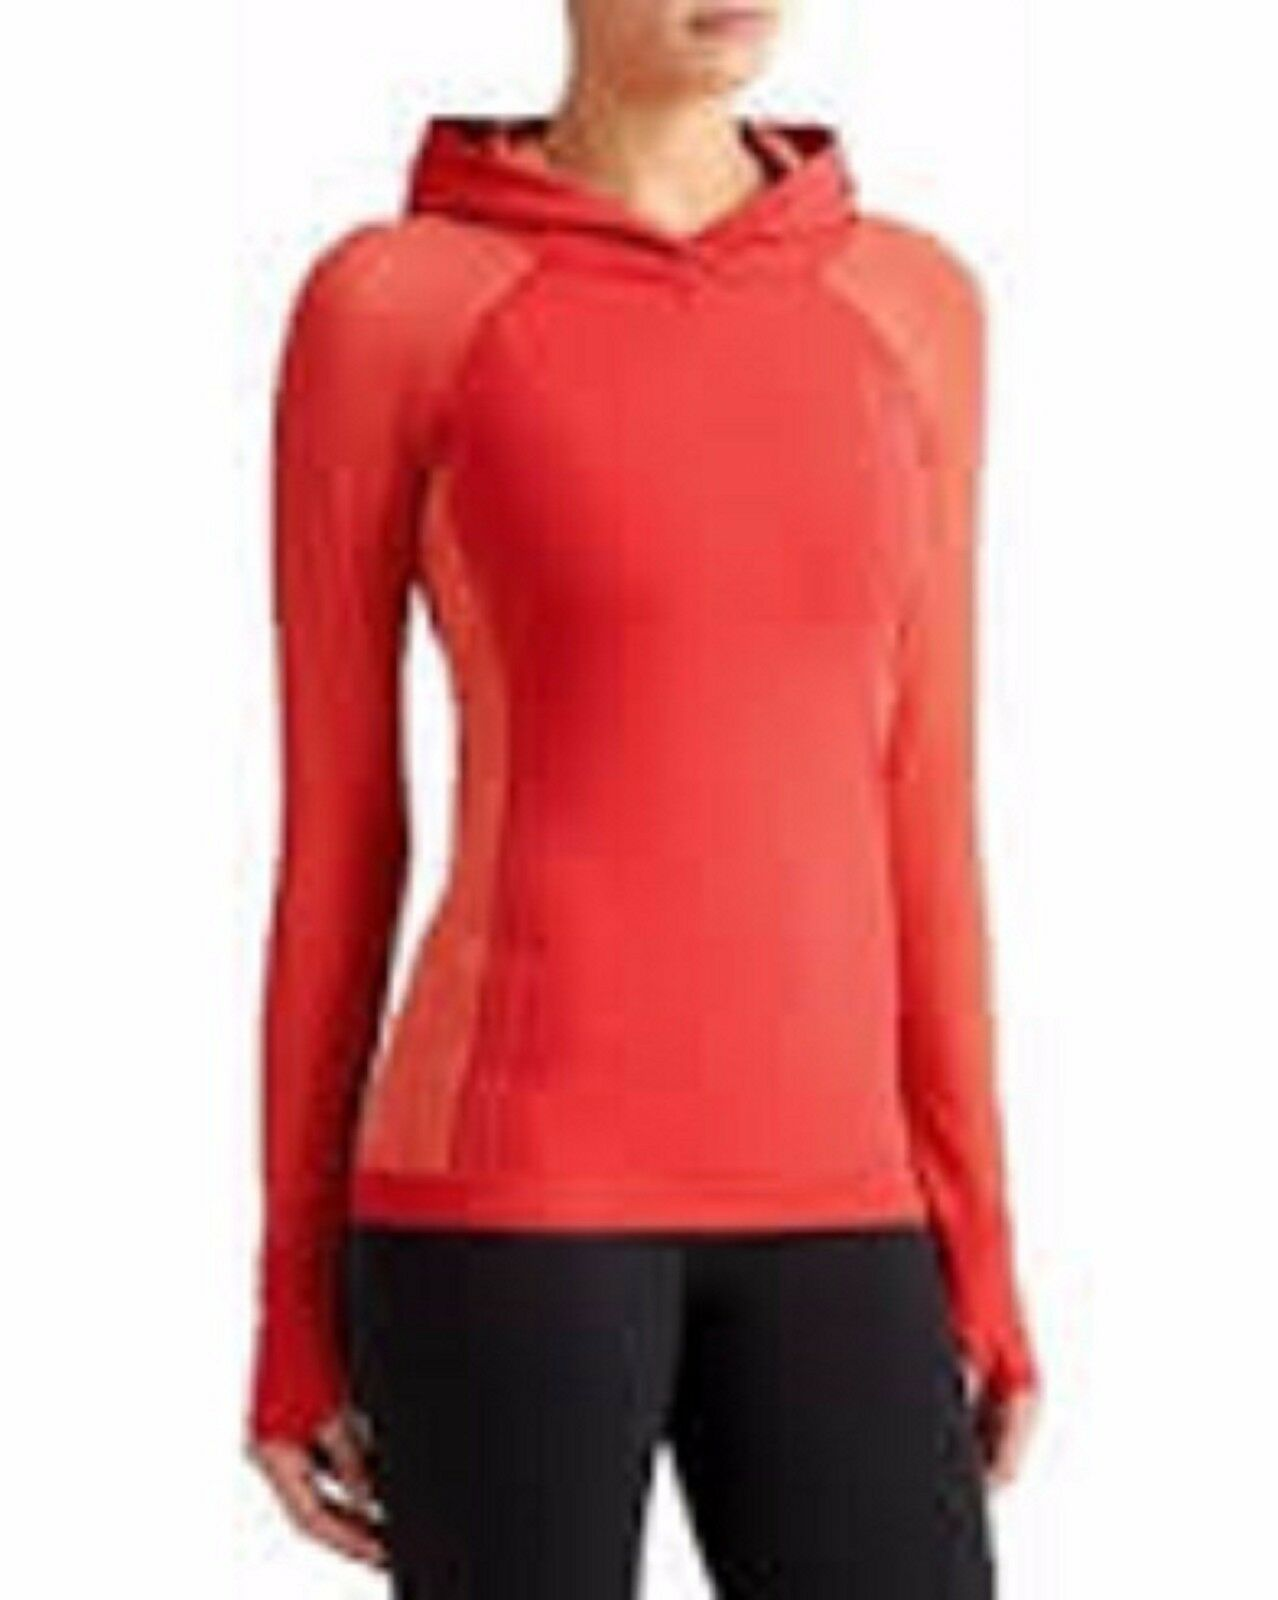 ATHLETA Neothermal Hoodie, NWT, Size Medium, Red Delicious, Winter Training